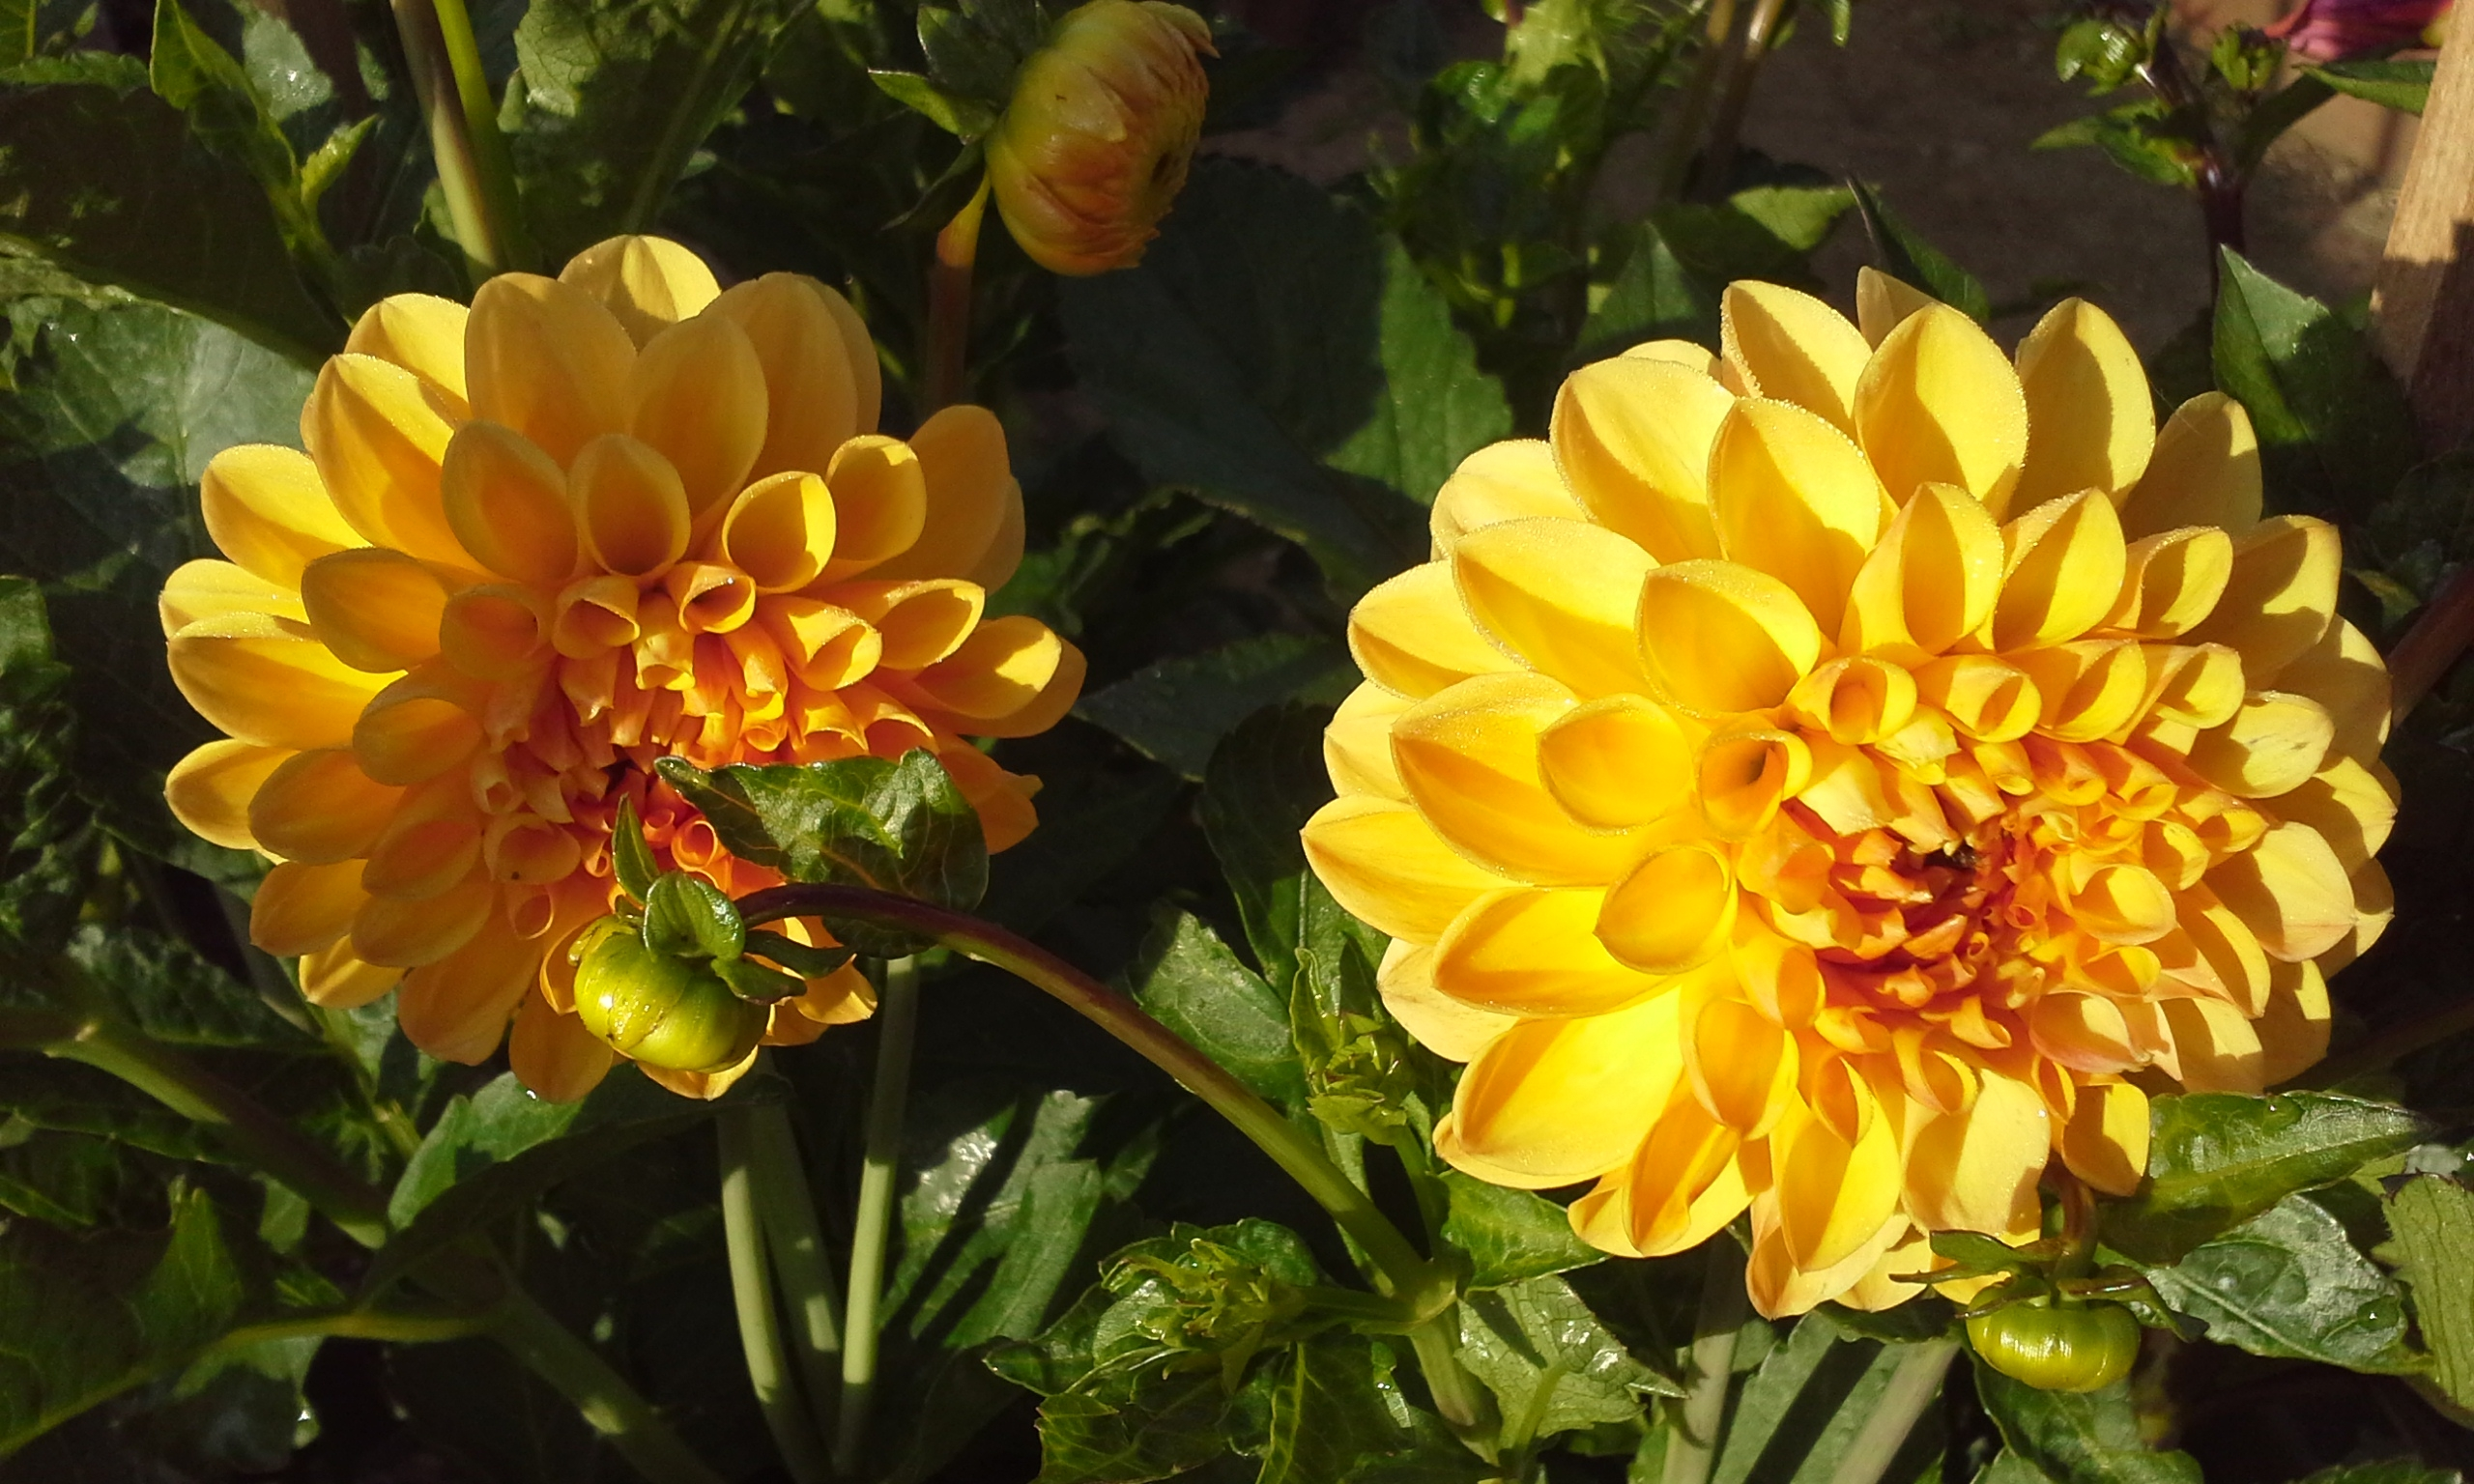 For the love of dahlias napa master gardener column anr blogs gw calhoun moon dahlia izmirmasajfo